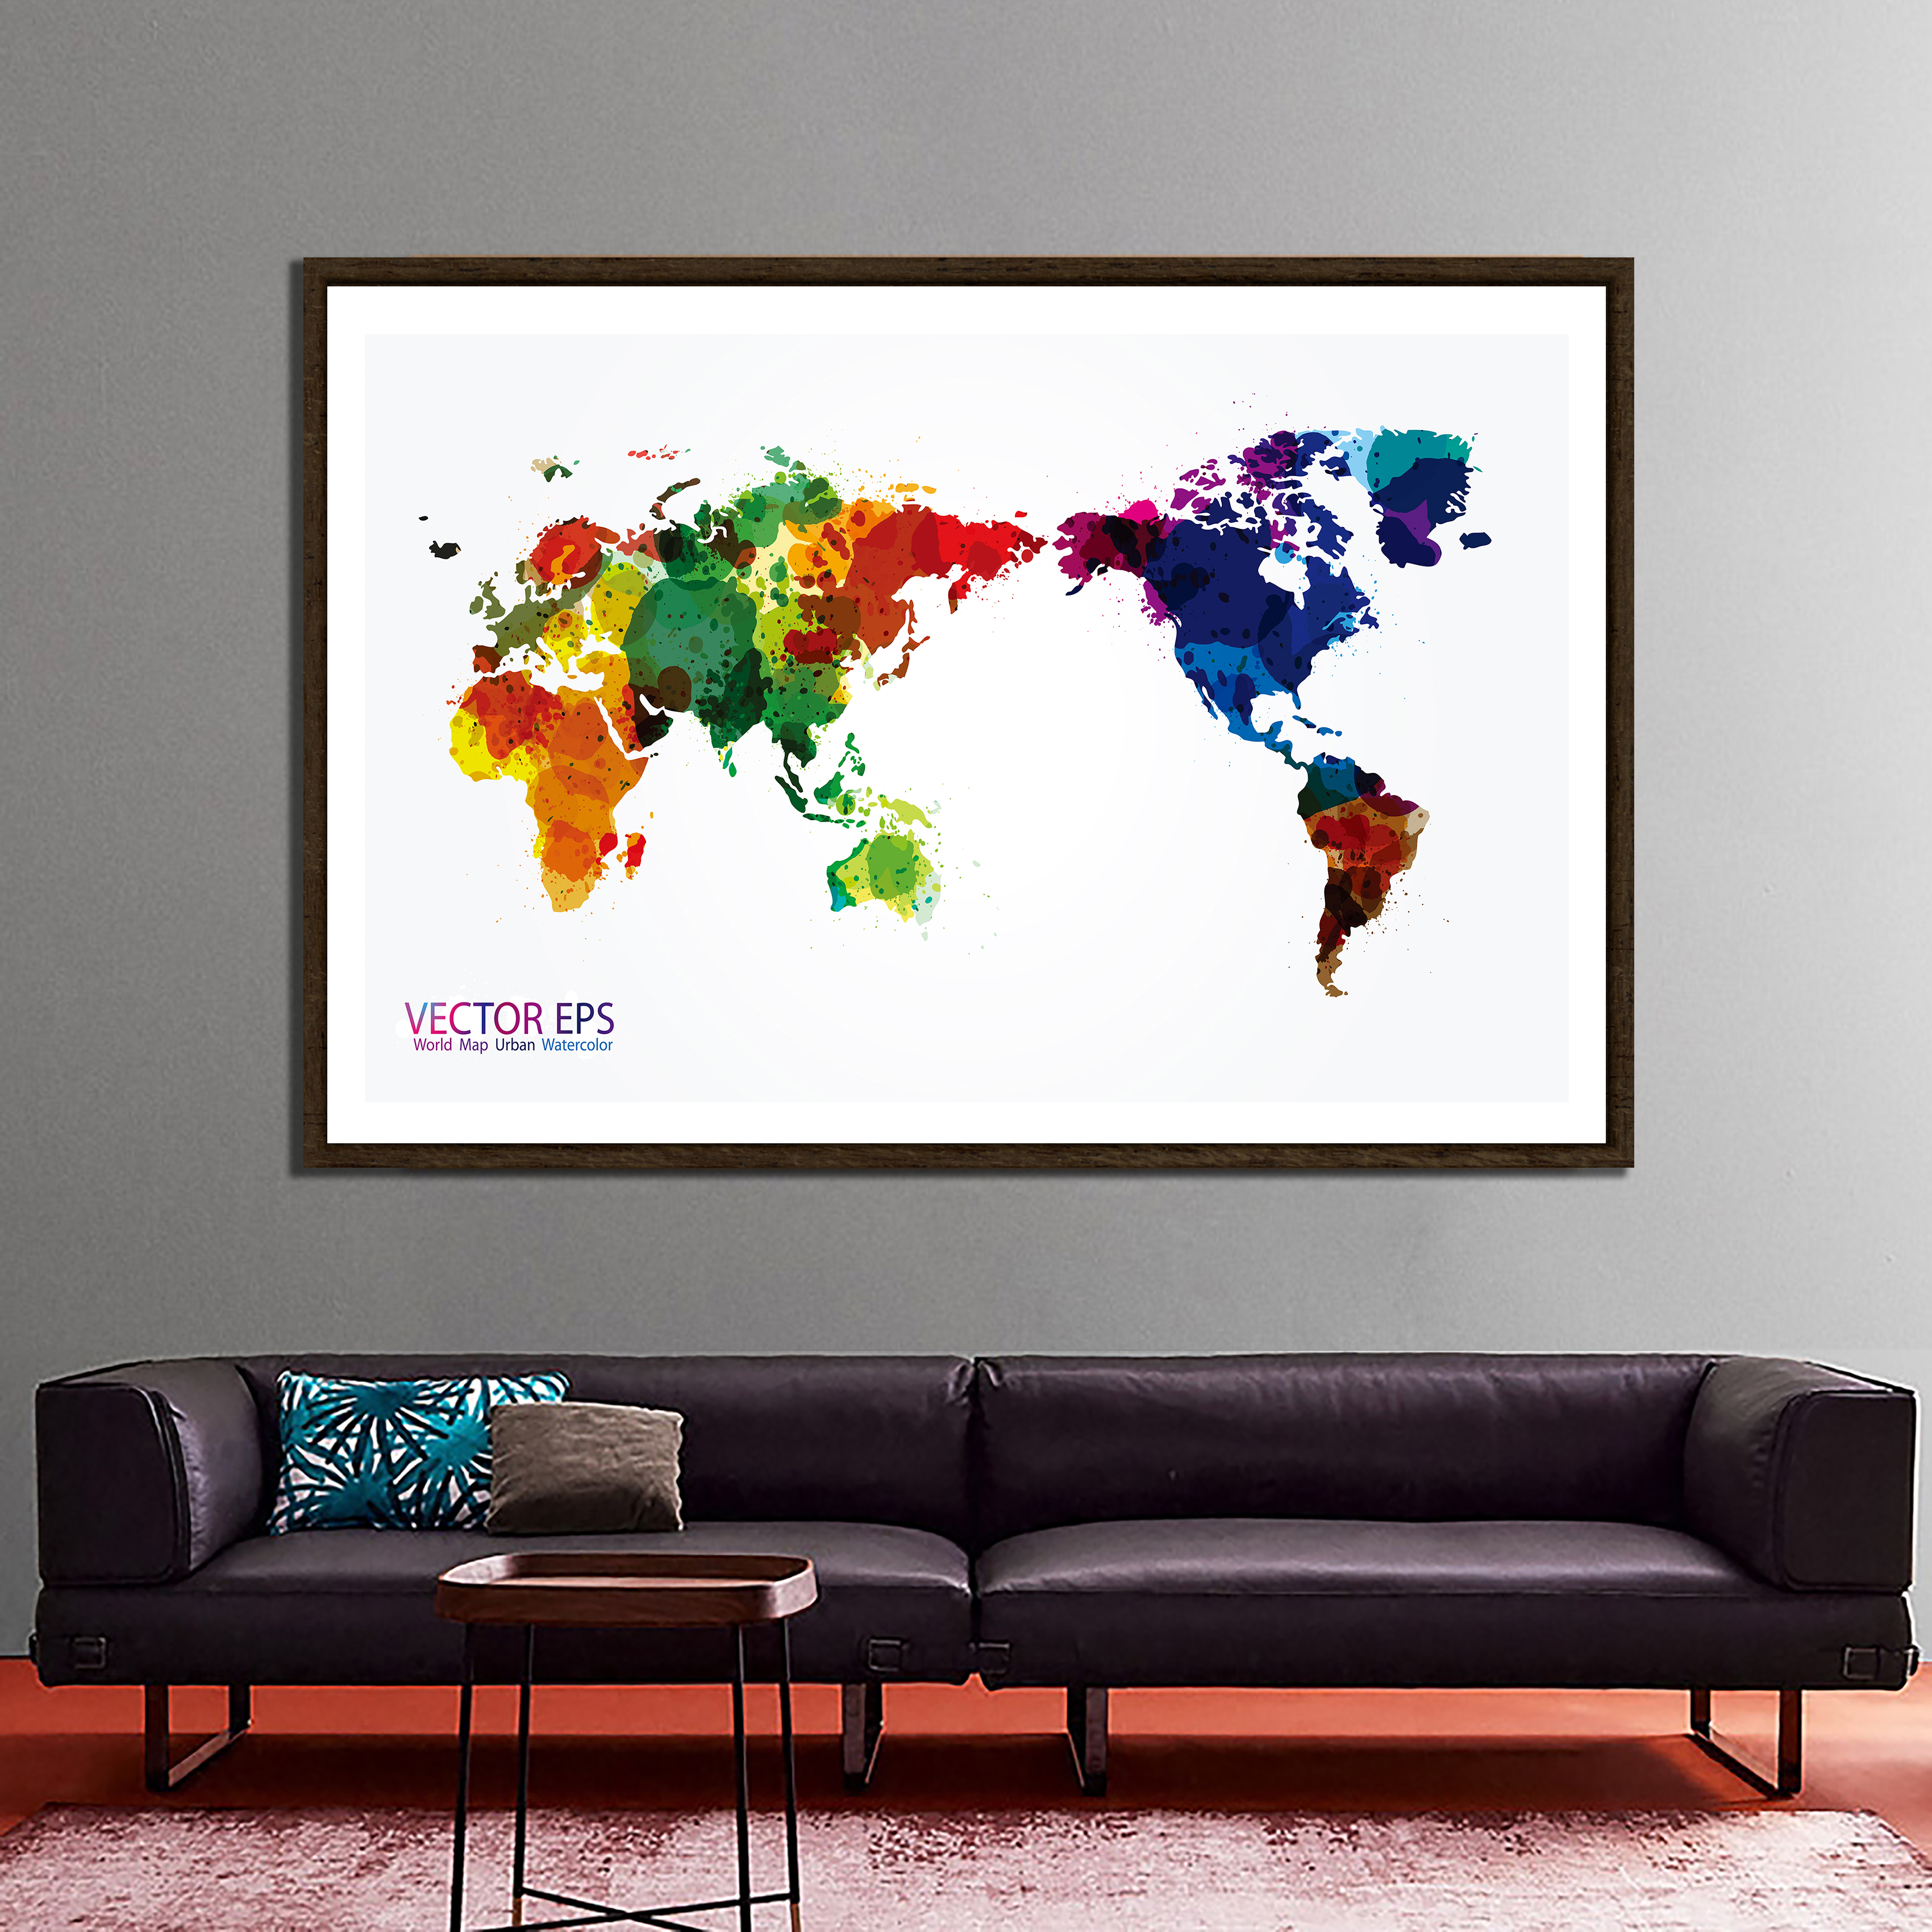 150x225cm VECTOR EPS World Map Urban Watercolor Home Office Wall Decor World Map Non-woven DIY World Map